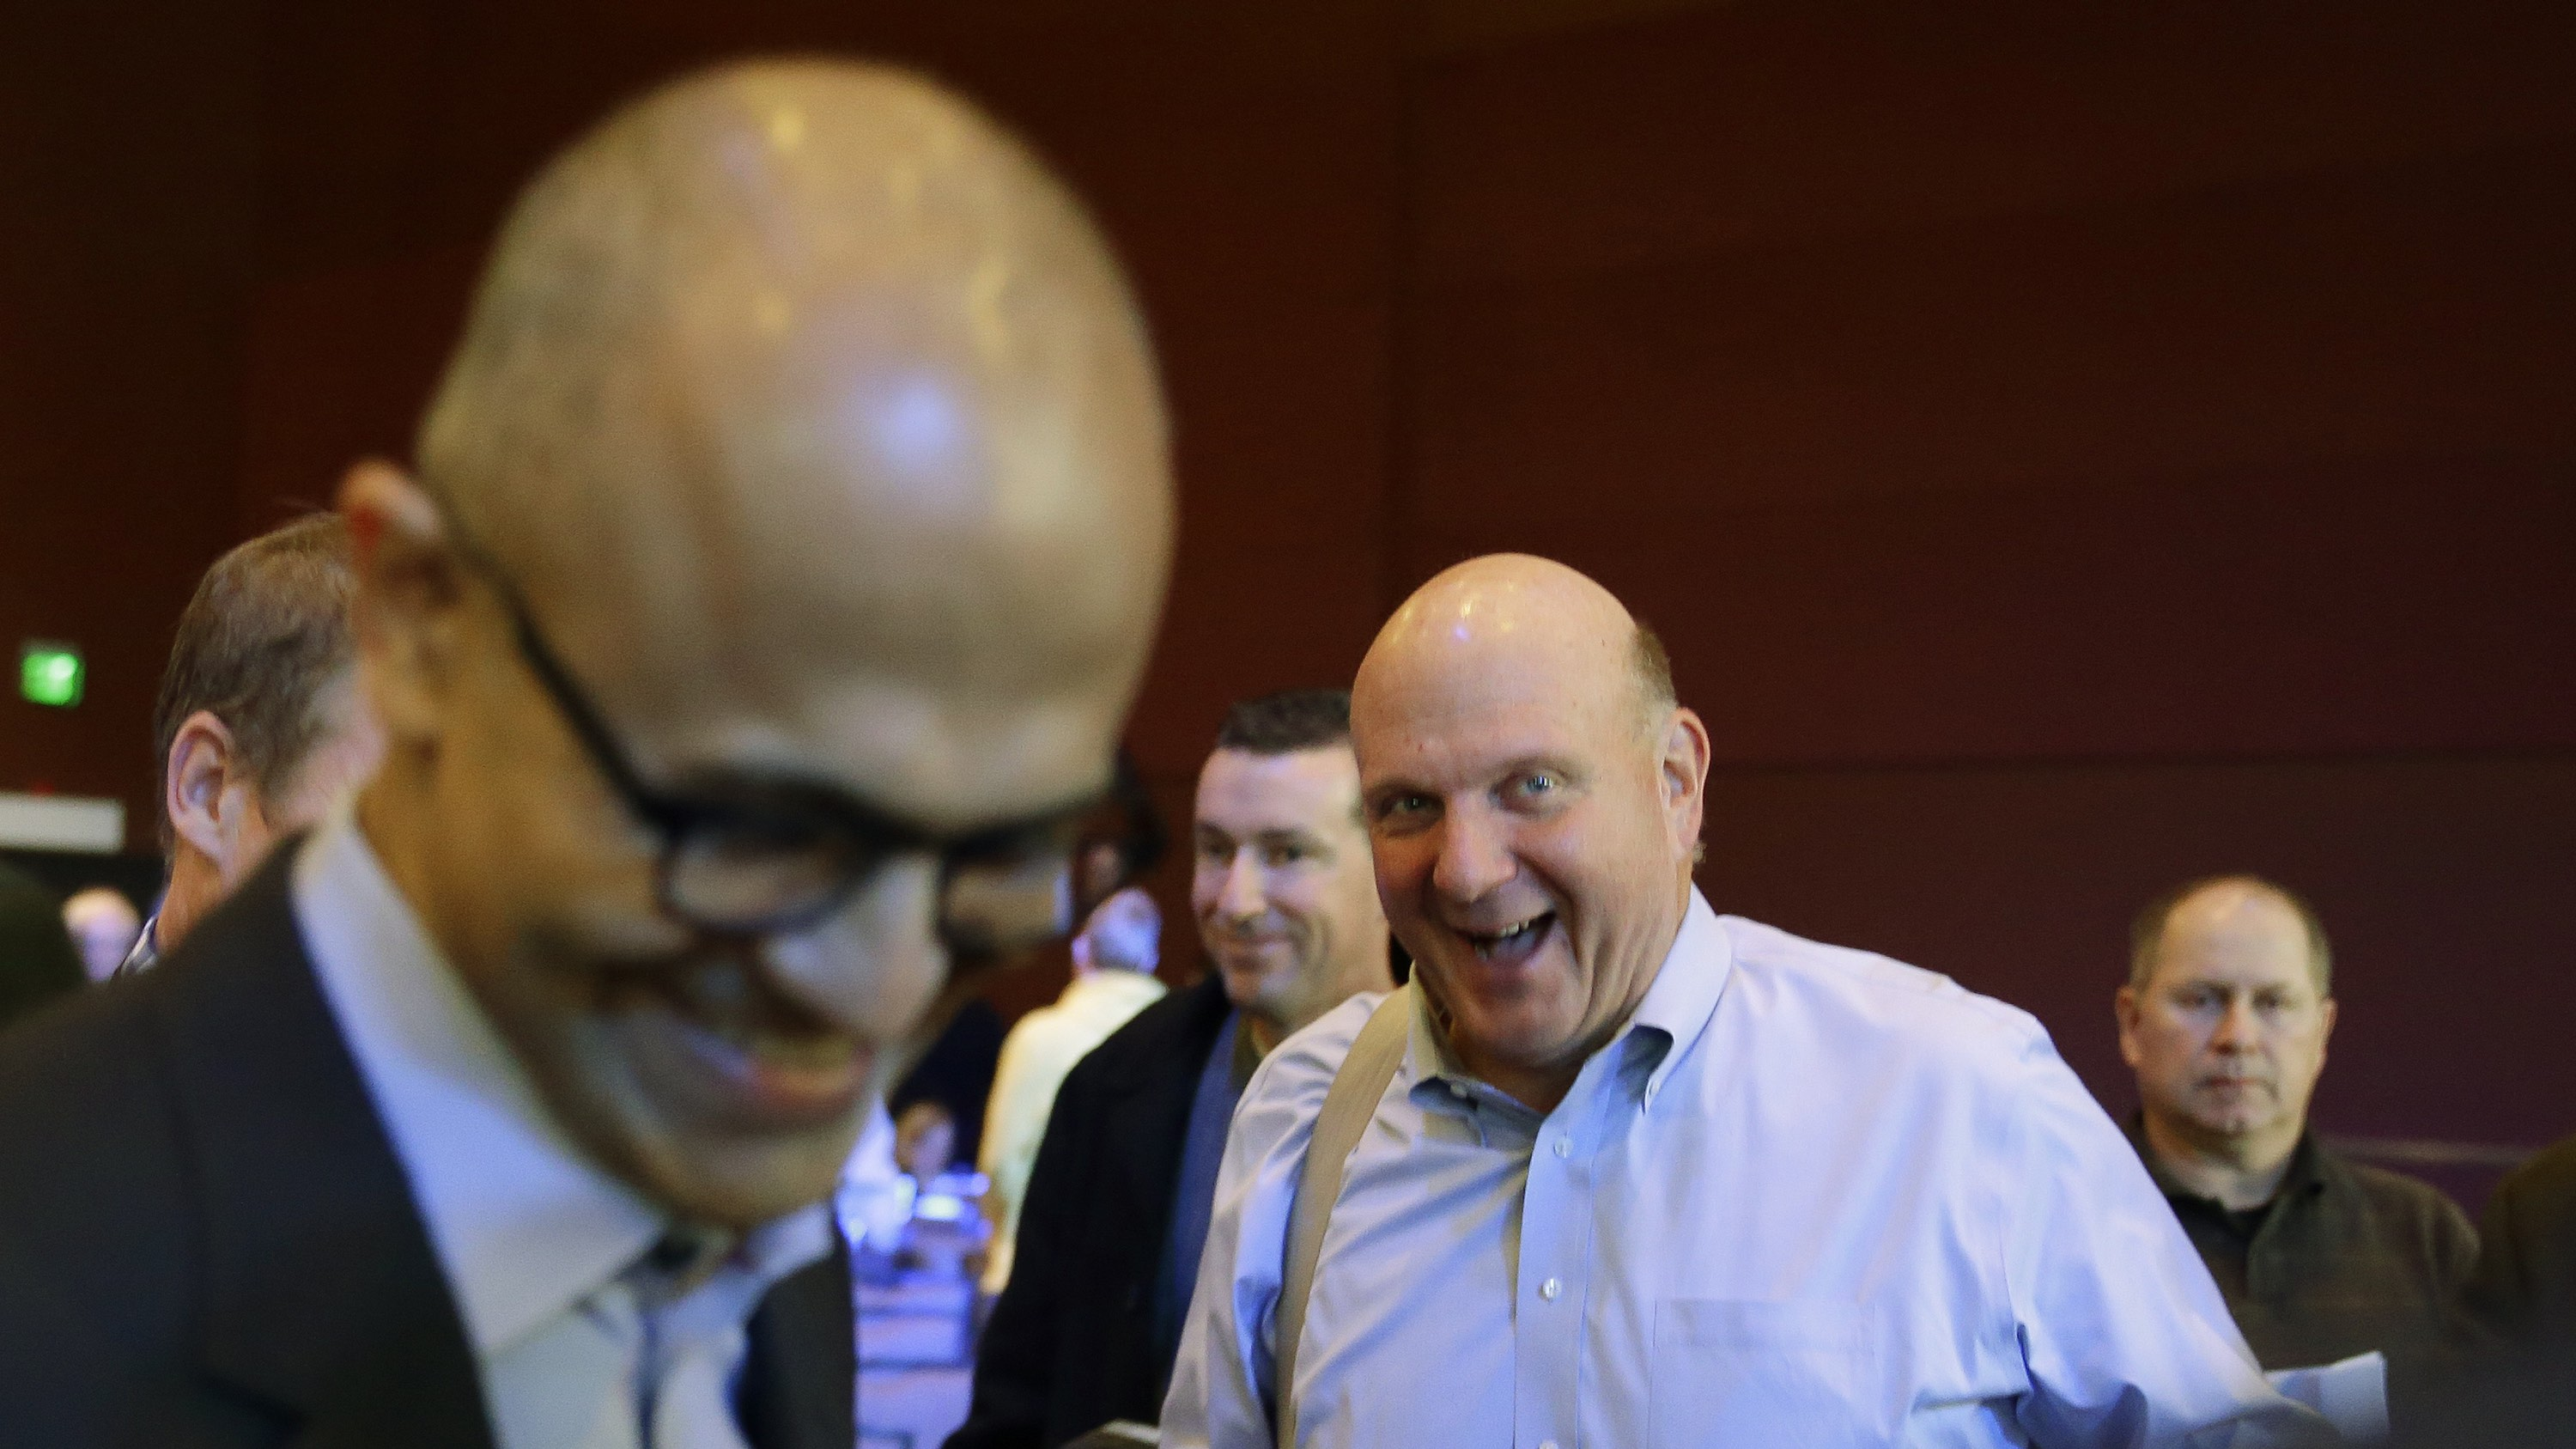 Former Microsoft CEO Steve Ballmer, right, laughs after shaking hands with current CEO Satya Nadella, left, Wednesday, Dec. 3, 2014, at Microsoft Corp.'s annual shareholders meeting, in Bellevue, Wash. (AP Photo/Ted S. Warren)